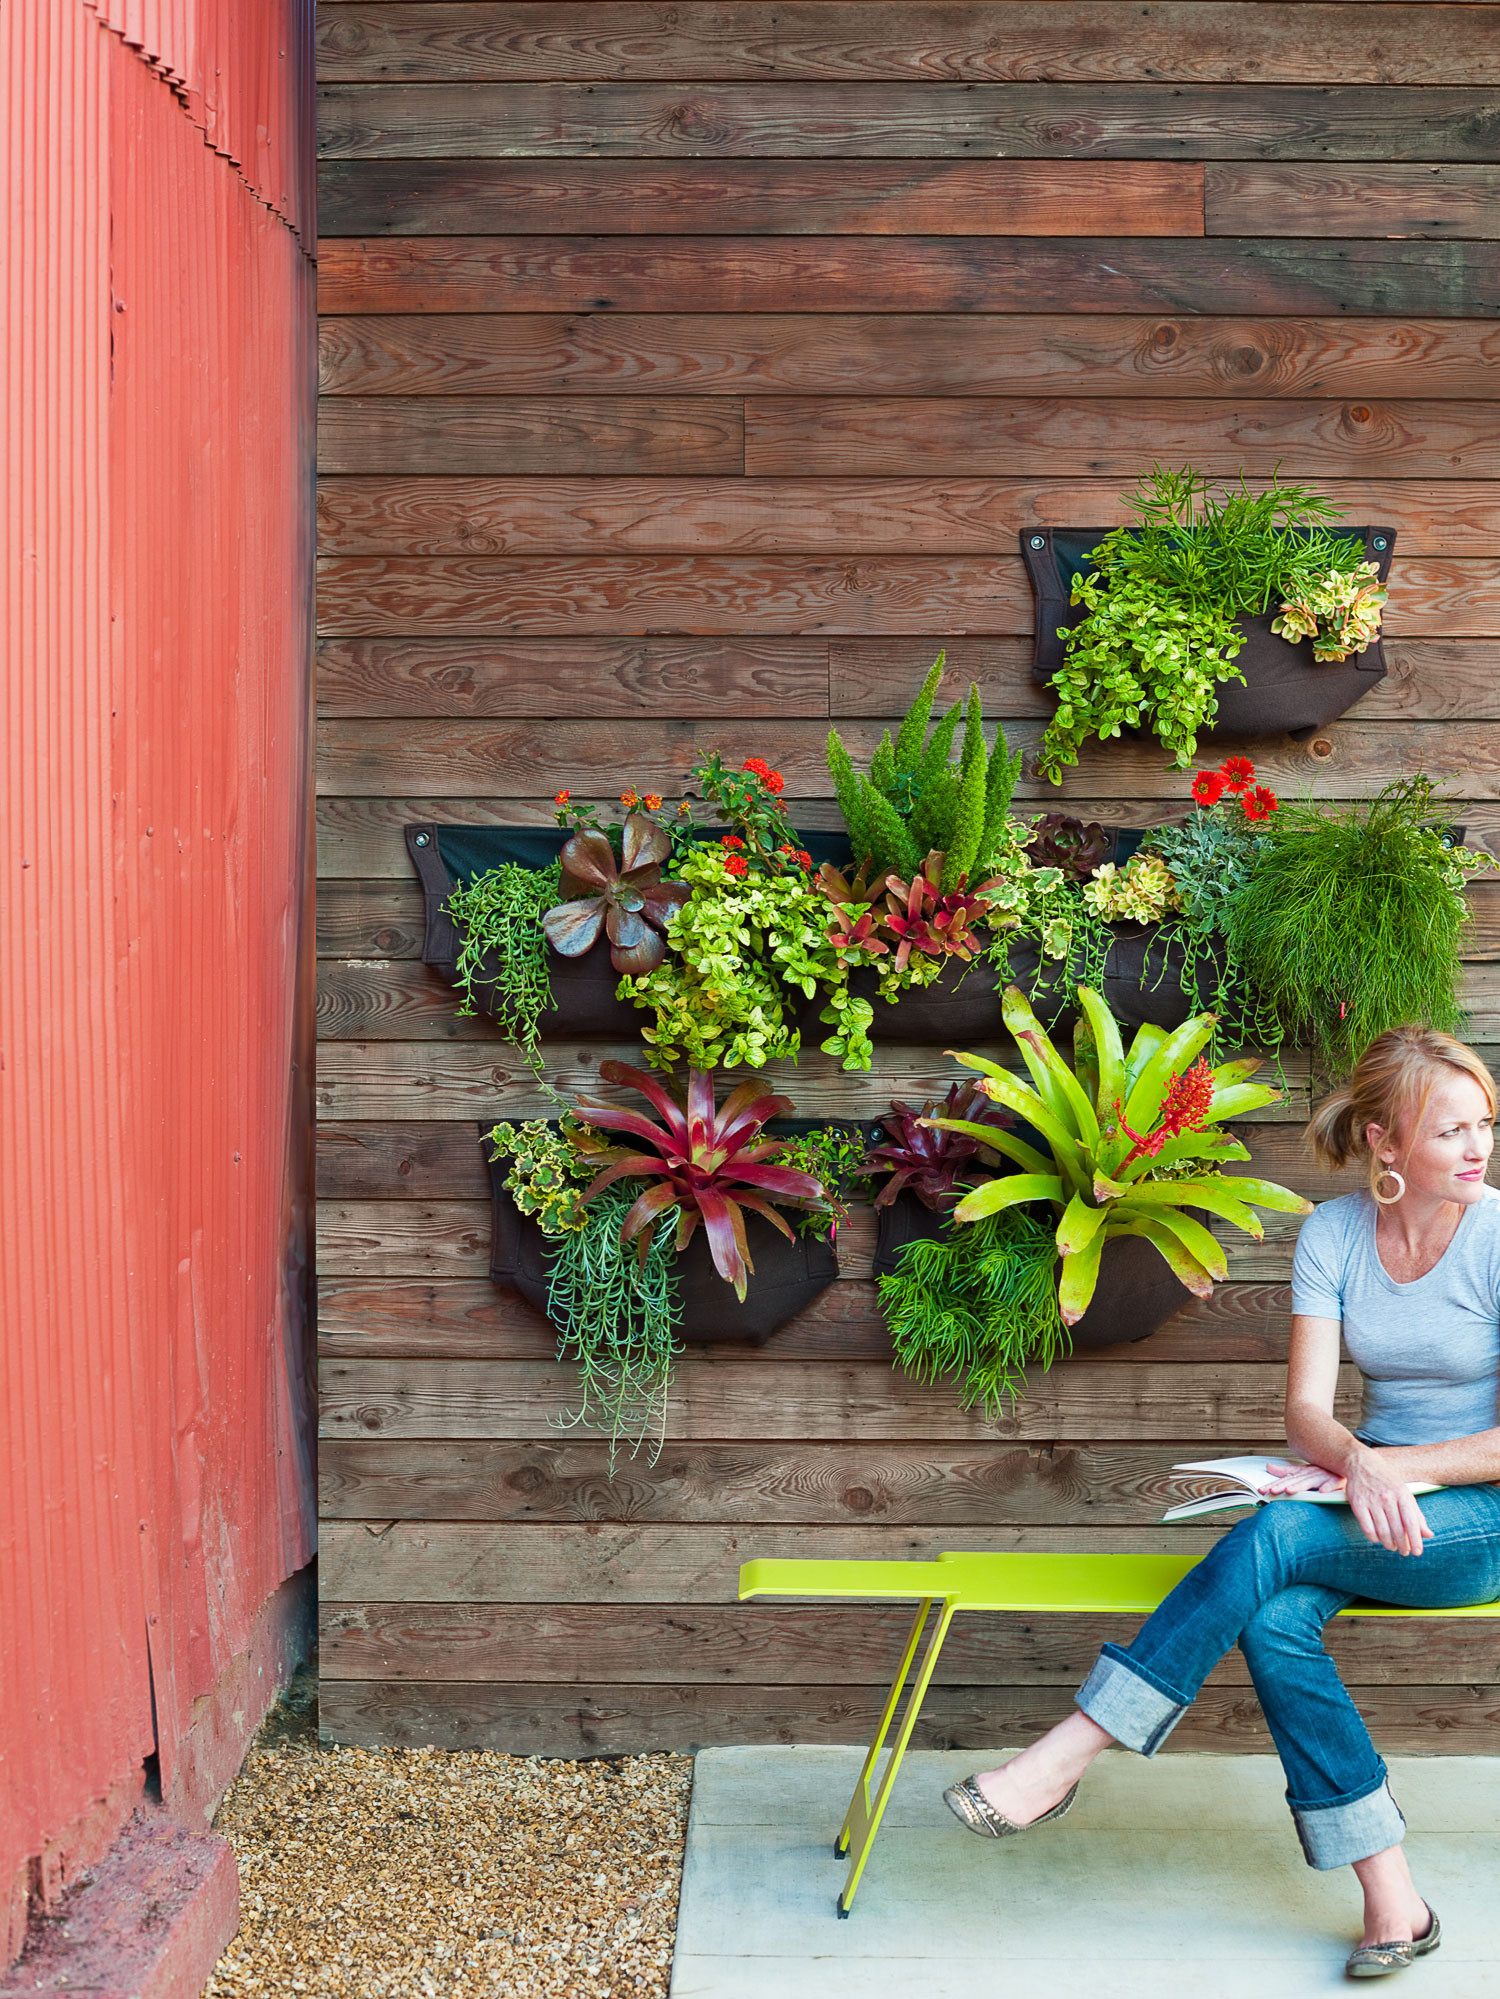 DIY Projects Outdoor  Sunset Magazine s Favorite DIY Garden Projects Sunset